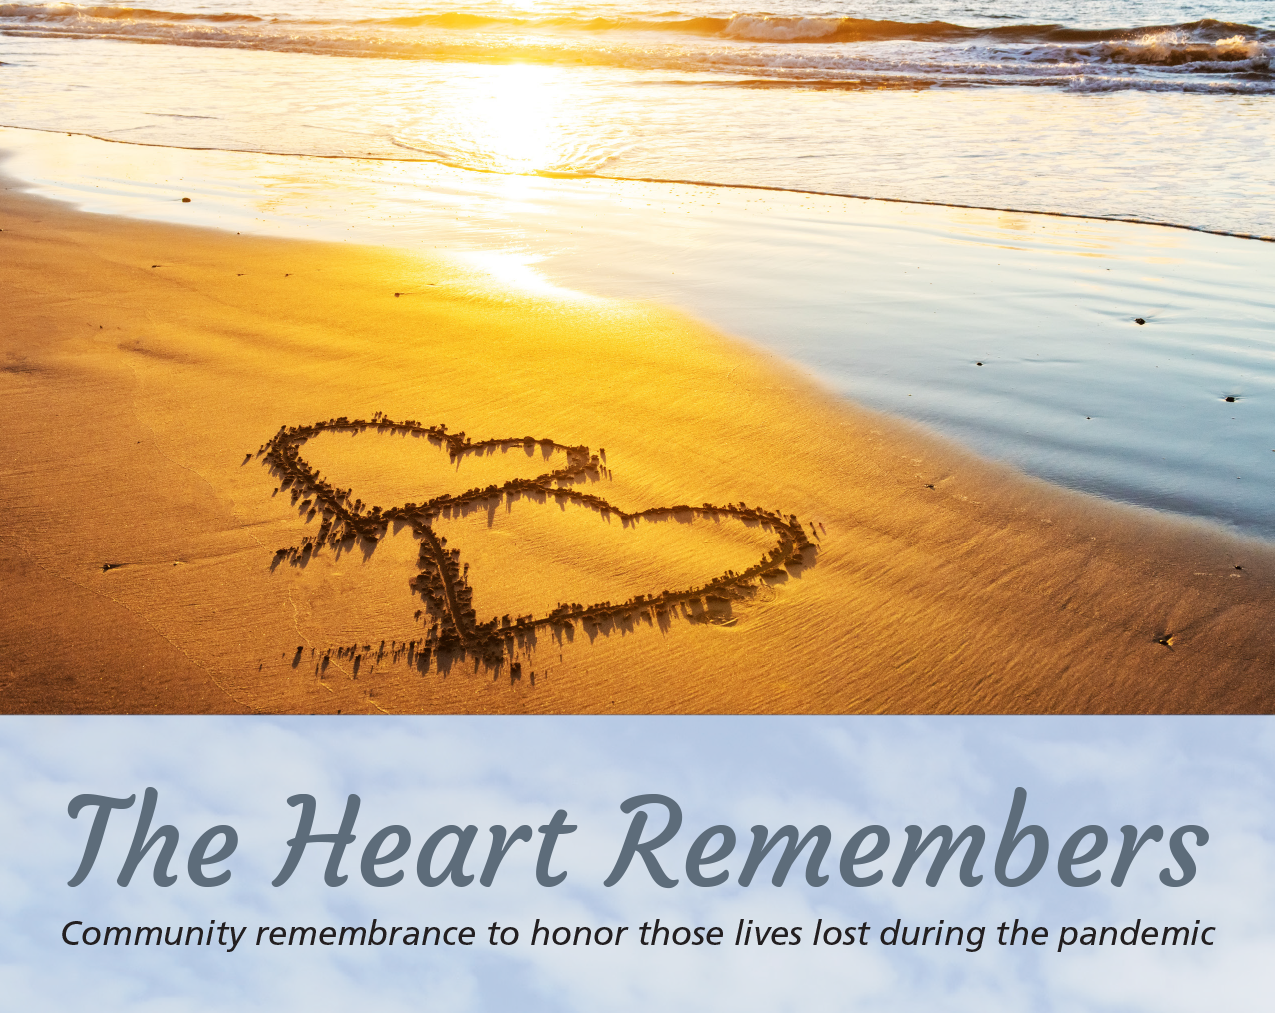 TheHeartRemembers - The Heart Remembers - Community Remembrance